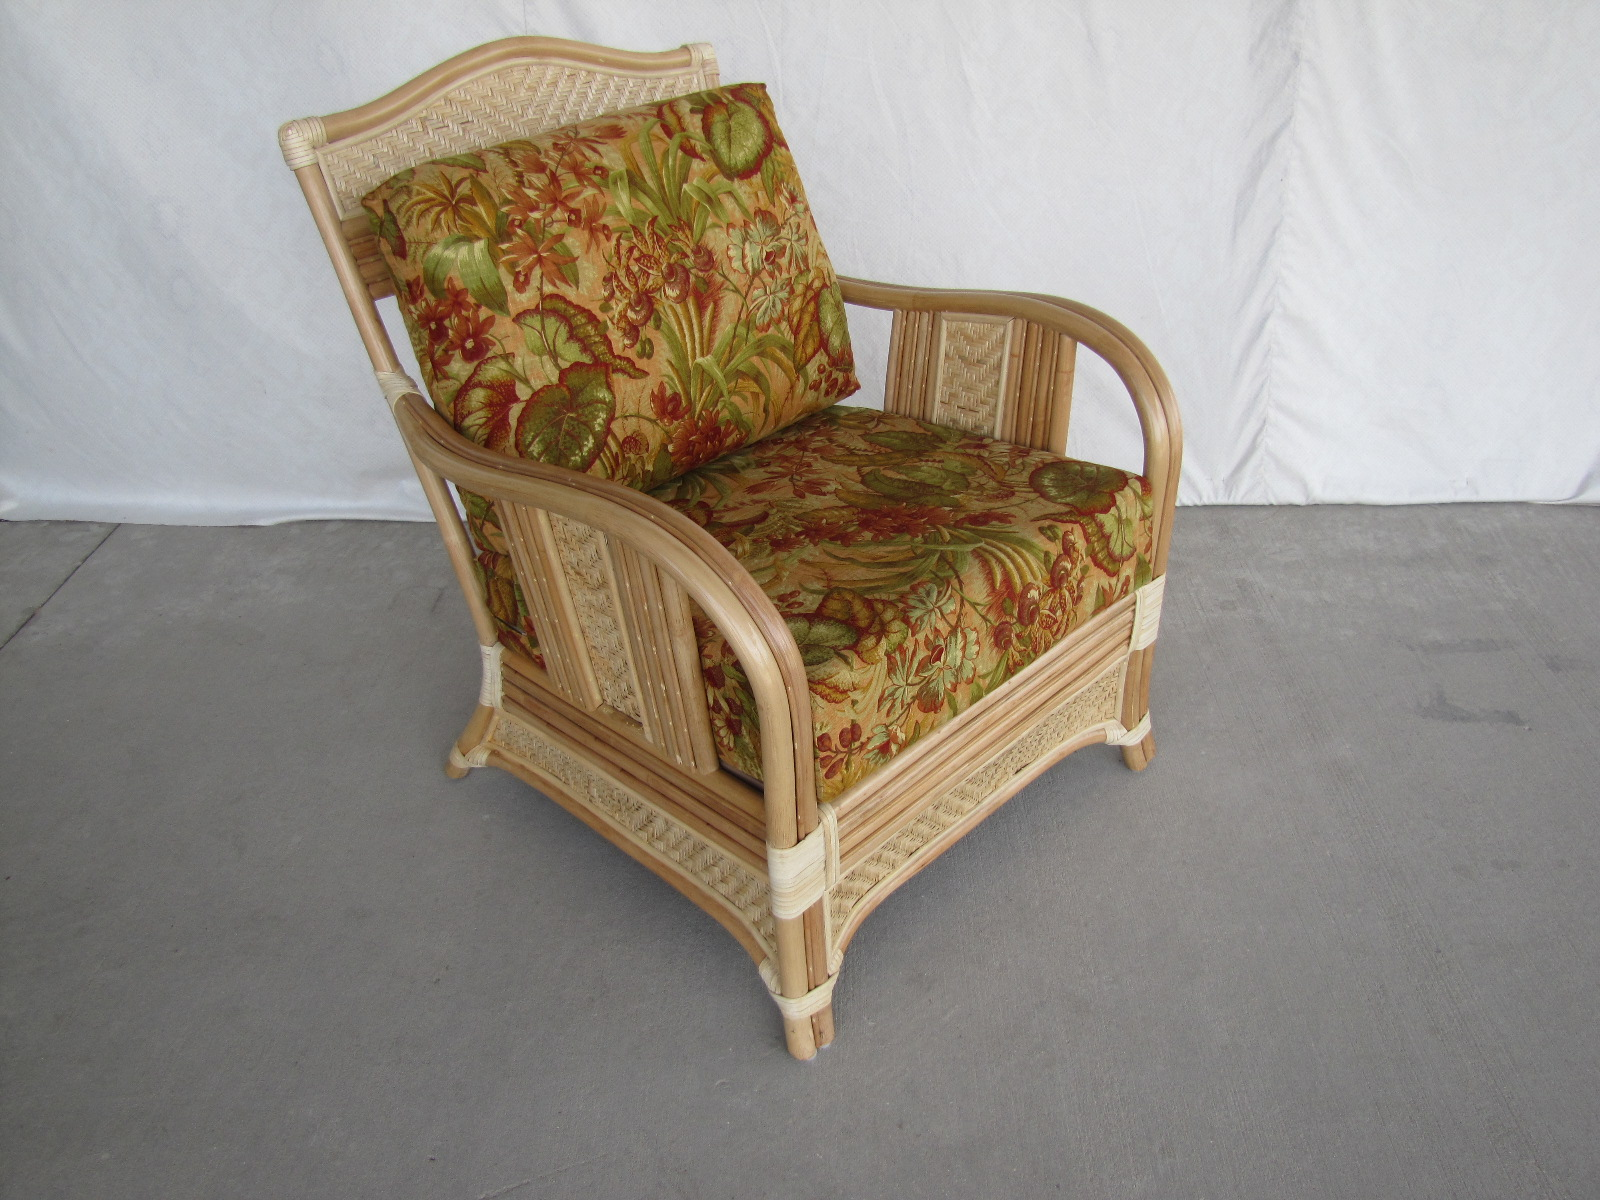 Quality Wicker Rattan Southern Home Furniture New And Used Furniture In Daytona Beach